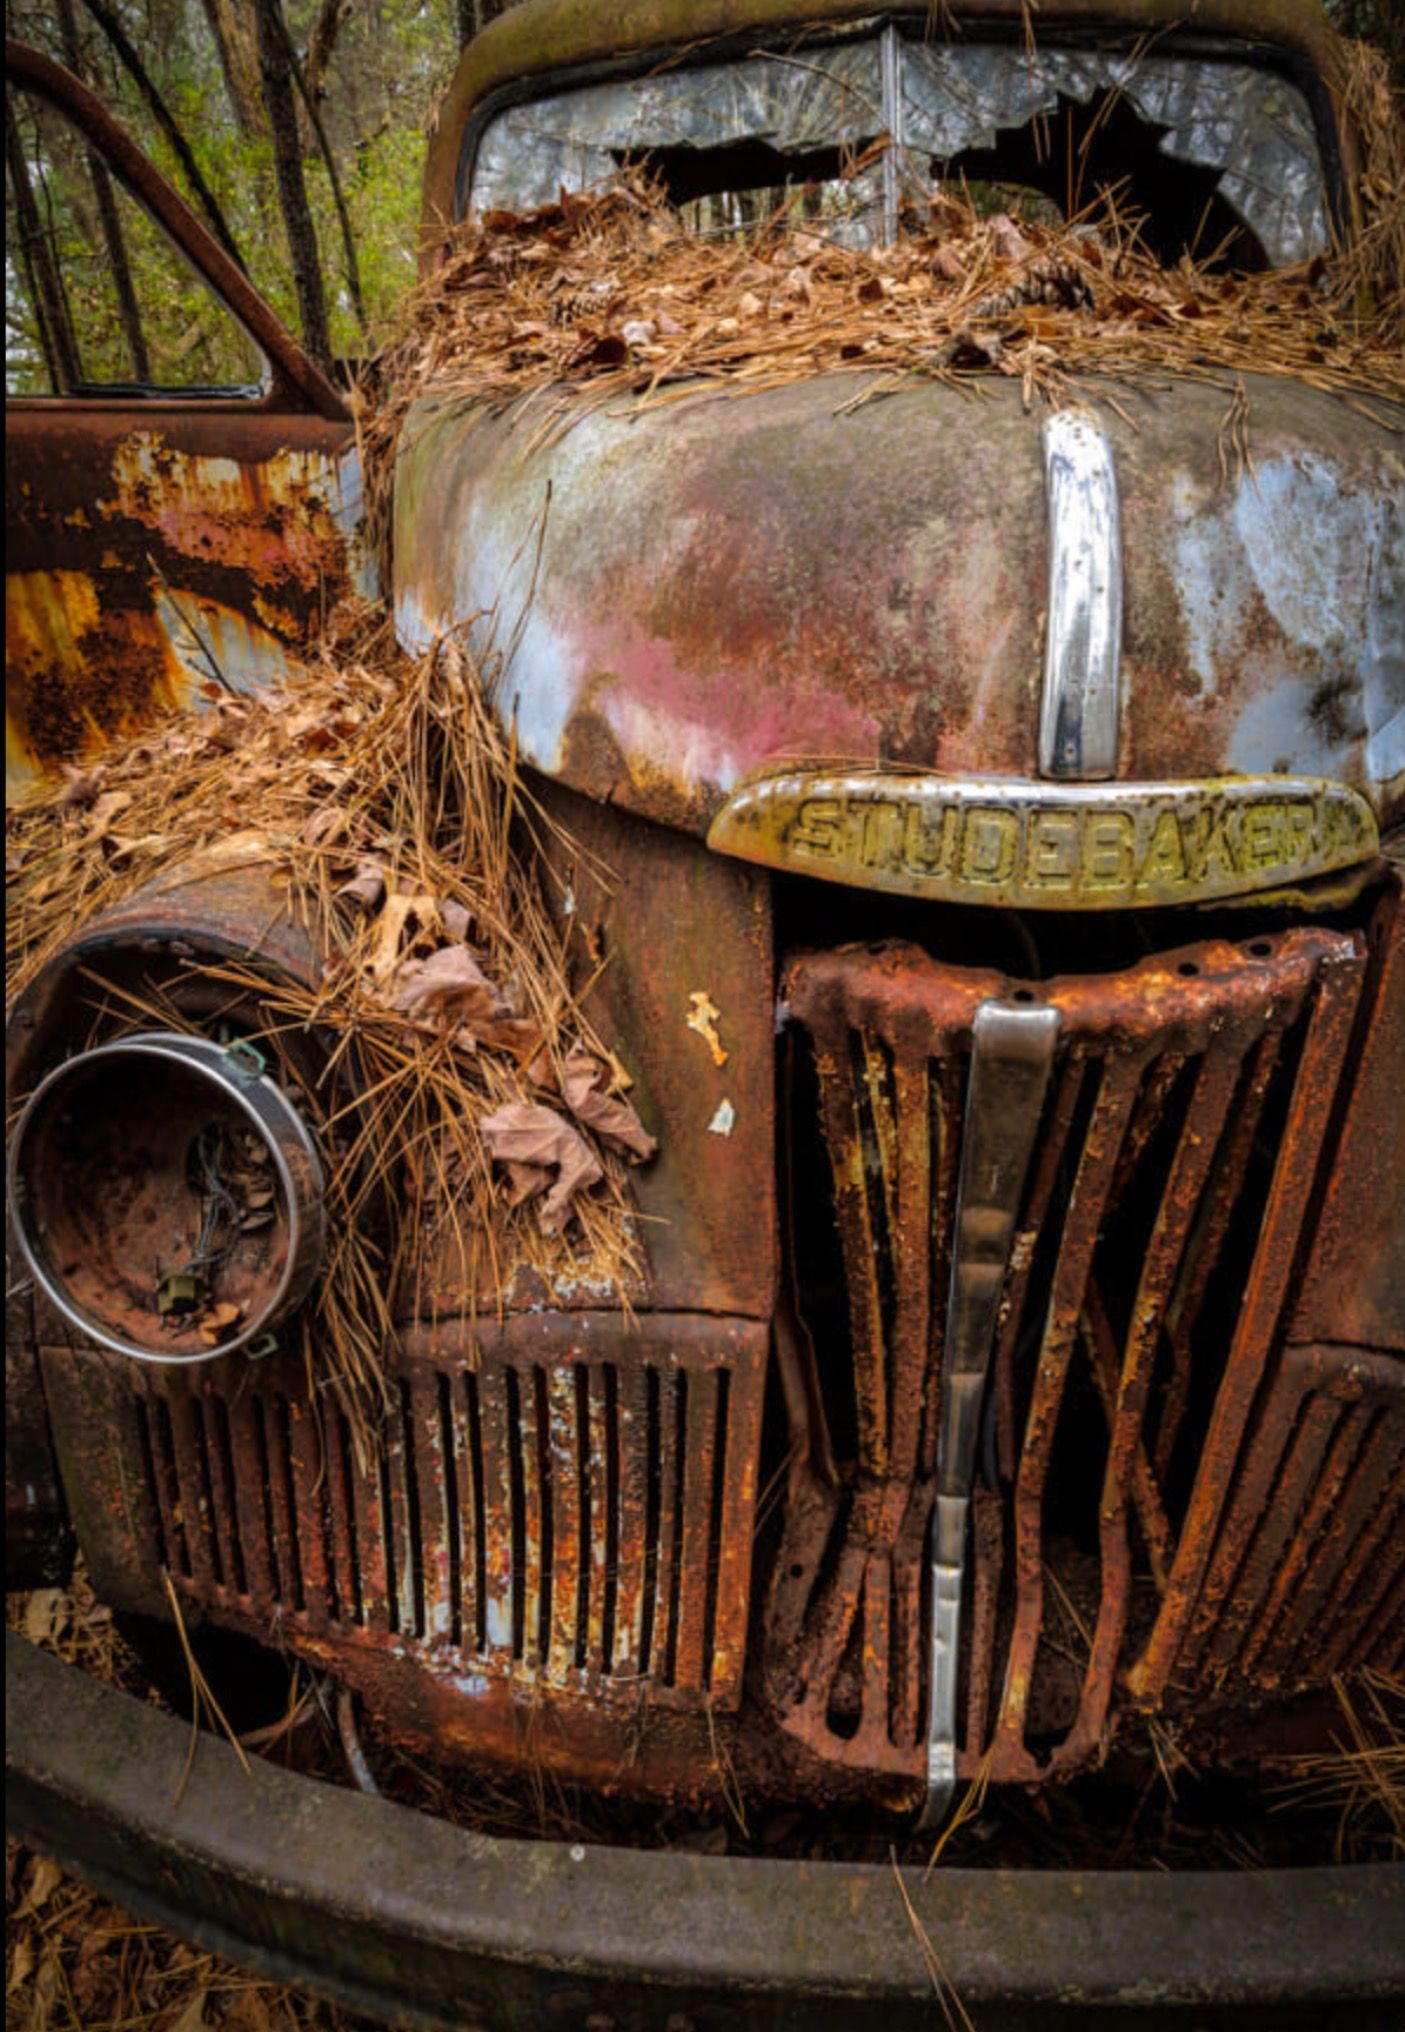 Studebaker Let S Ride Old Car City White Ga Photo By Charlie Choc Source 500px Com Old Cars Abandoned Cars Vintage Cars